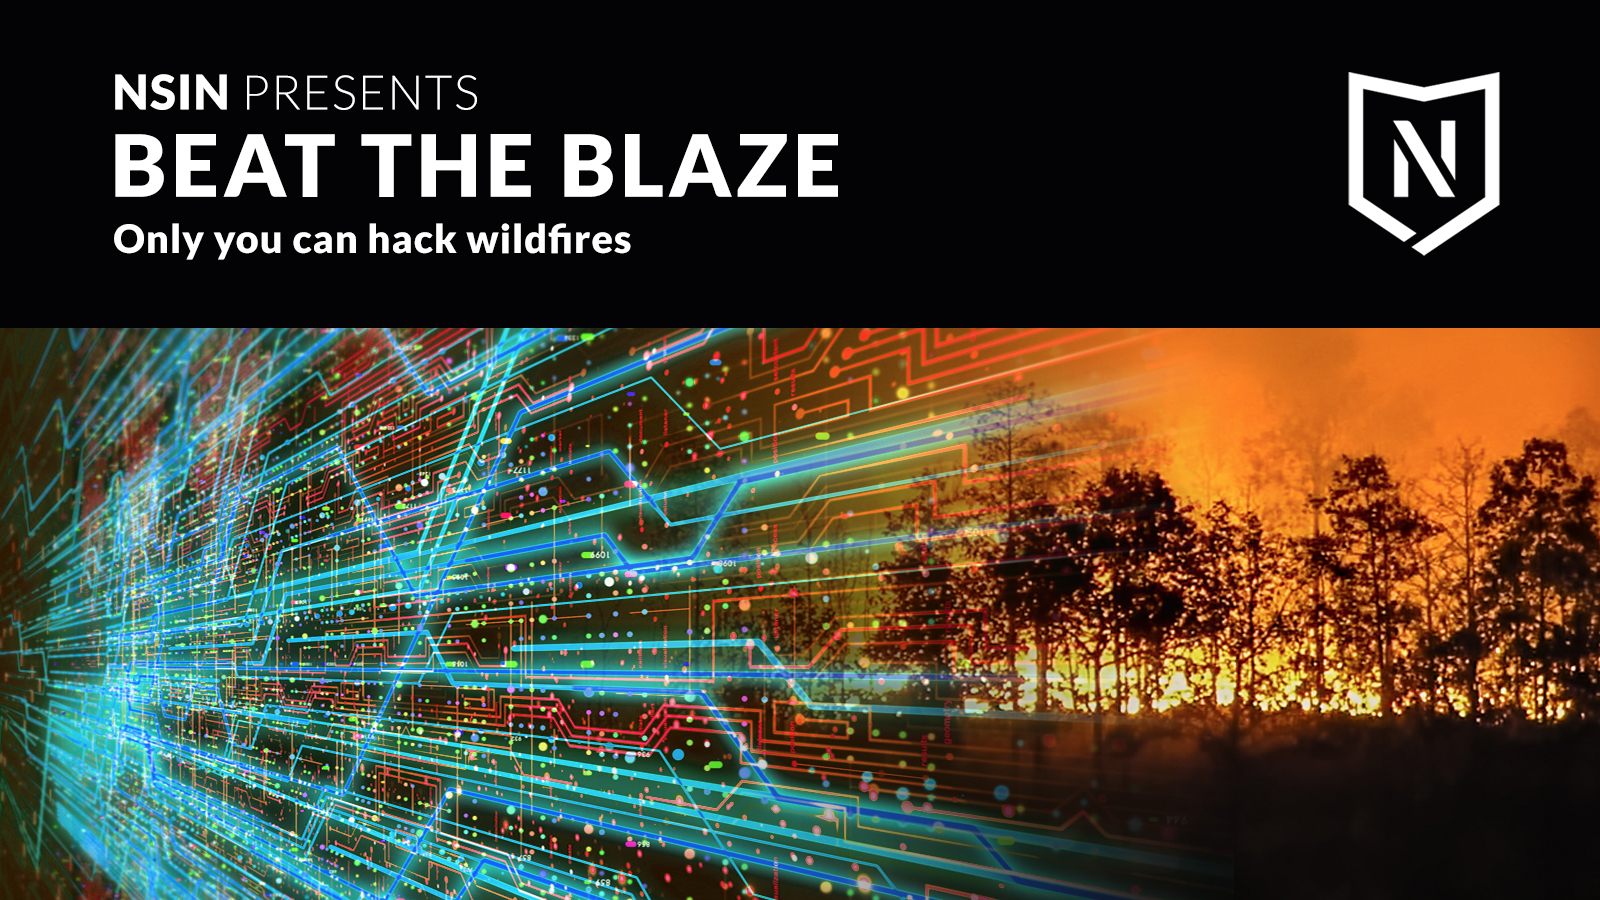 NSIN Hacks present Beat the Blaze: Only you can Hack wildfires